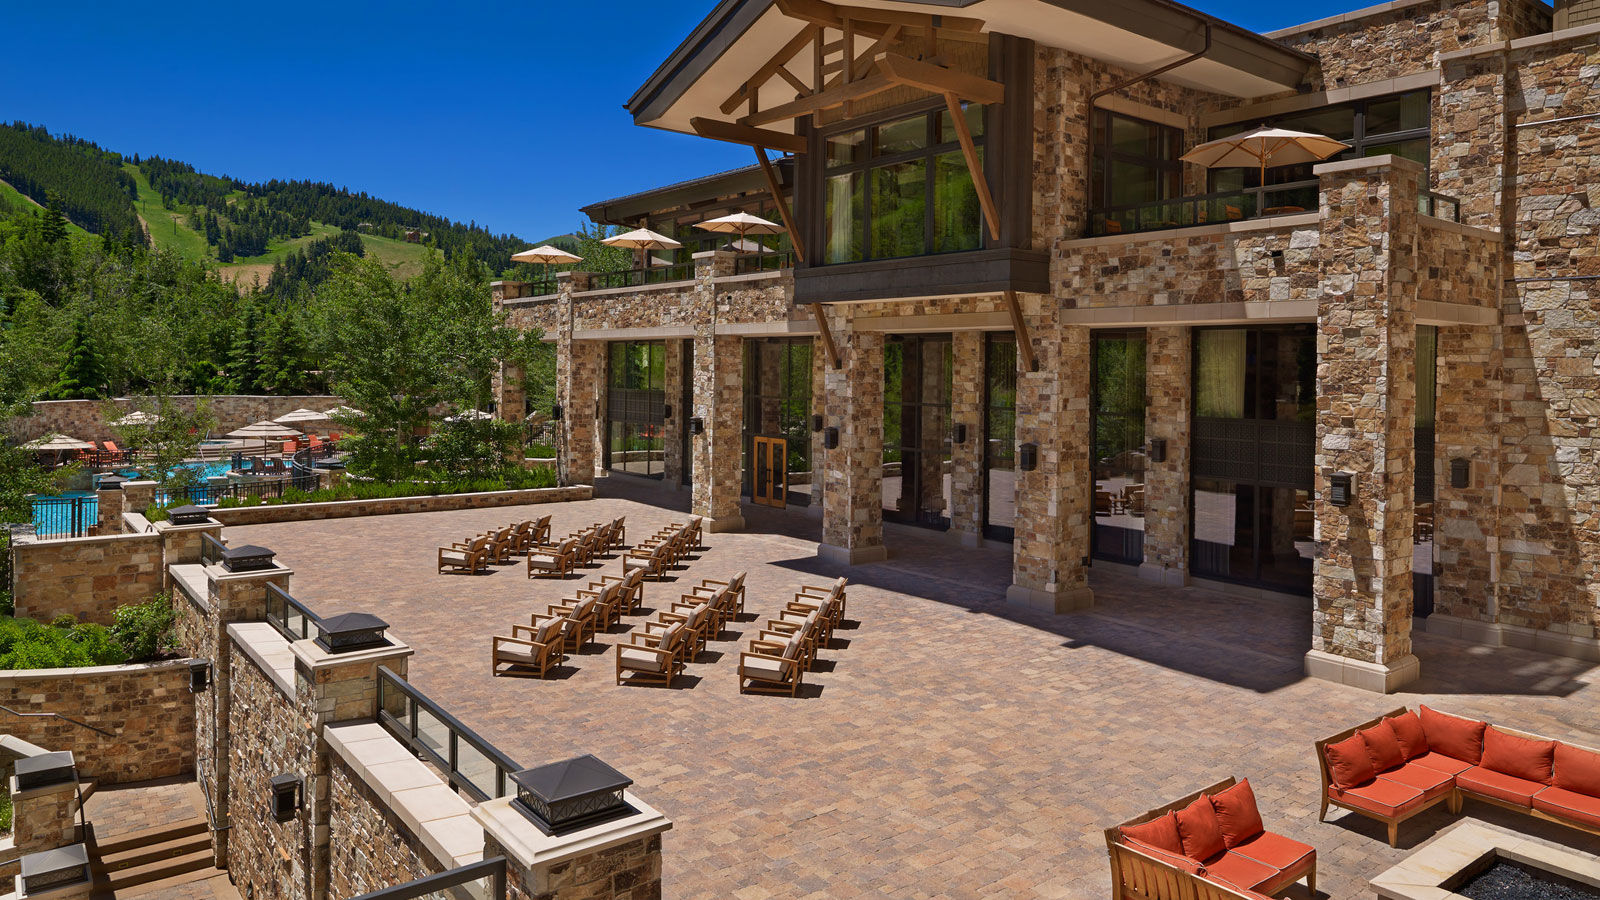 Large Meetings - The St. Regis Deer Valley